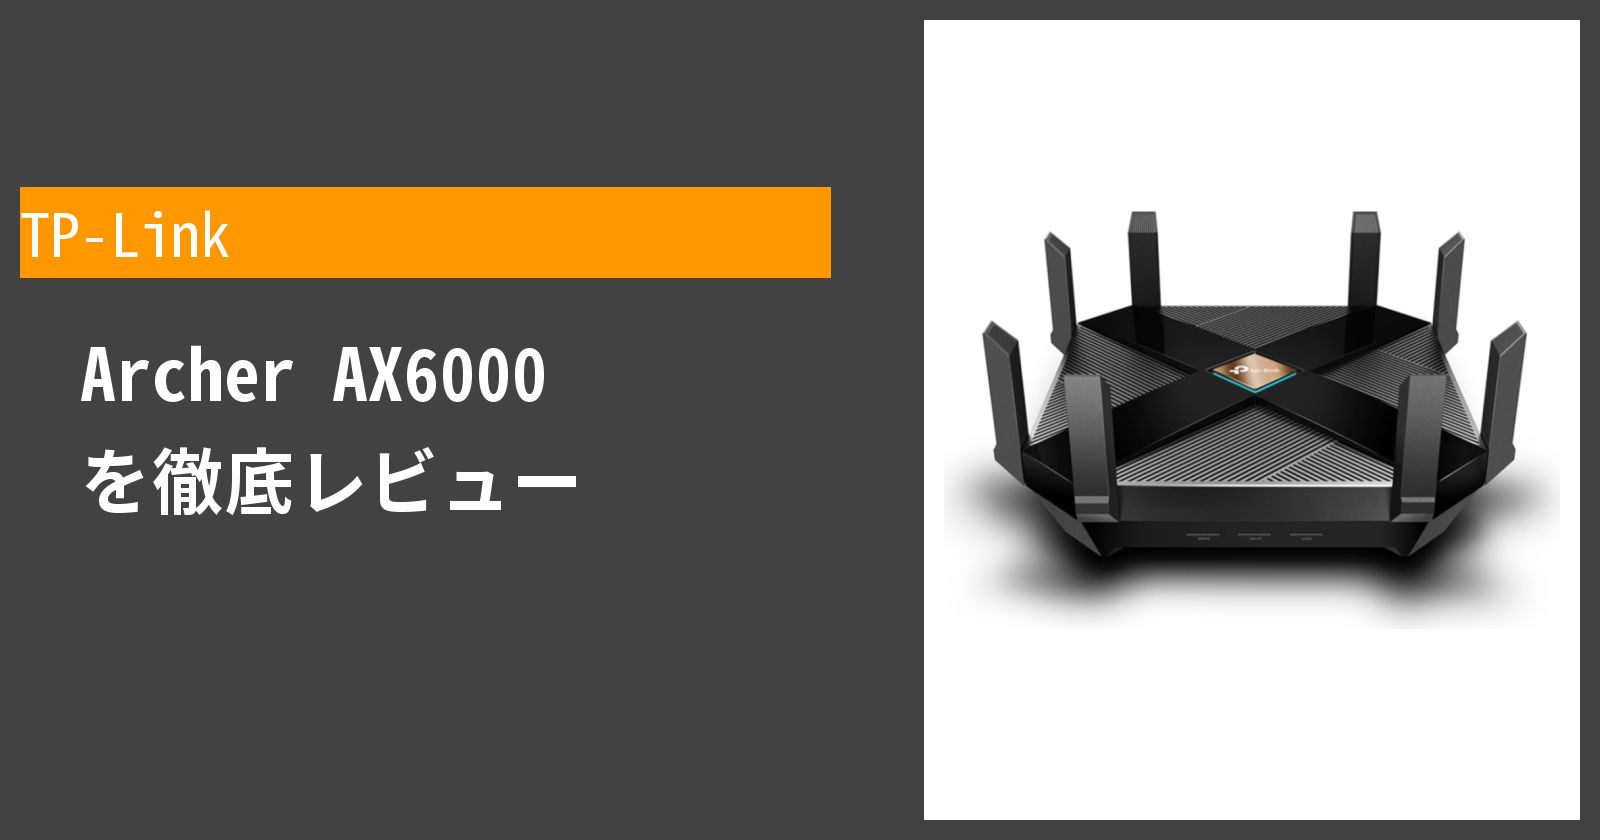 Archer AX6000を徹底評価